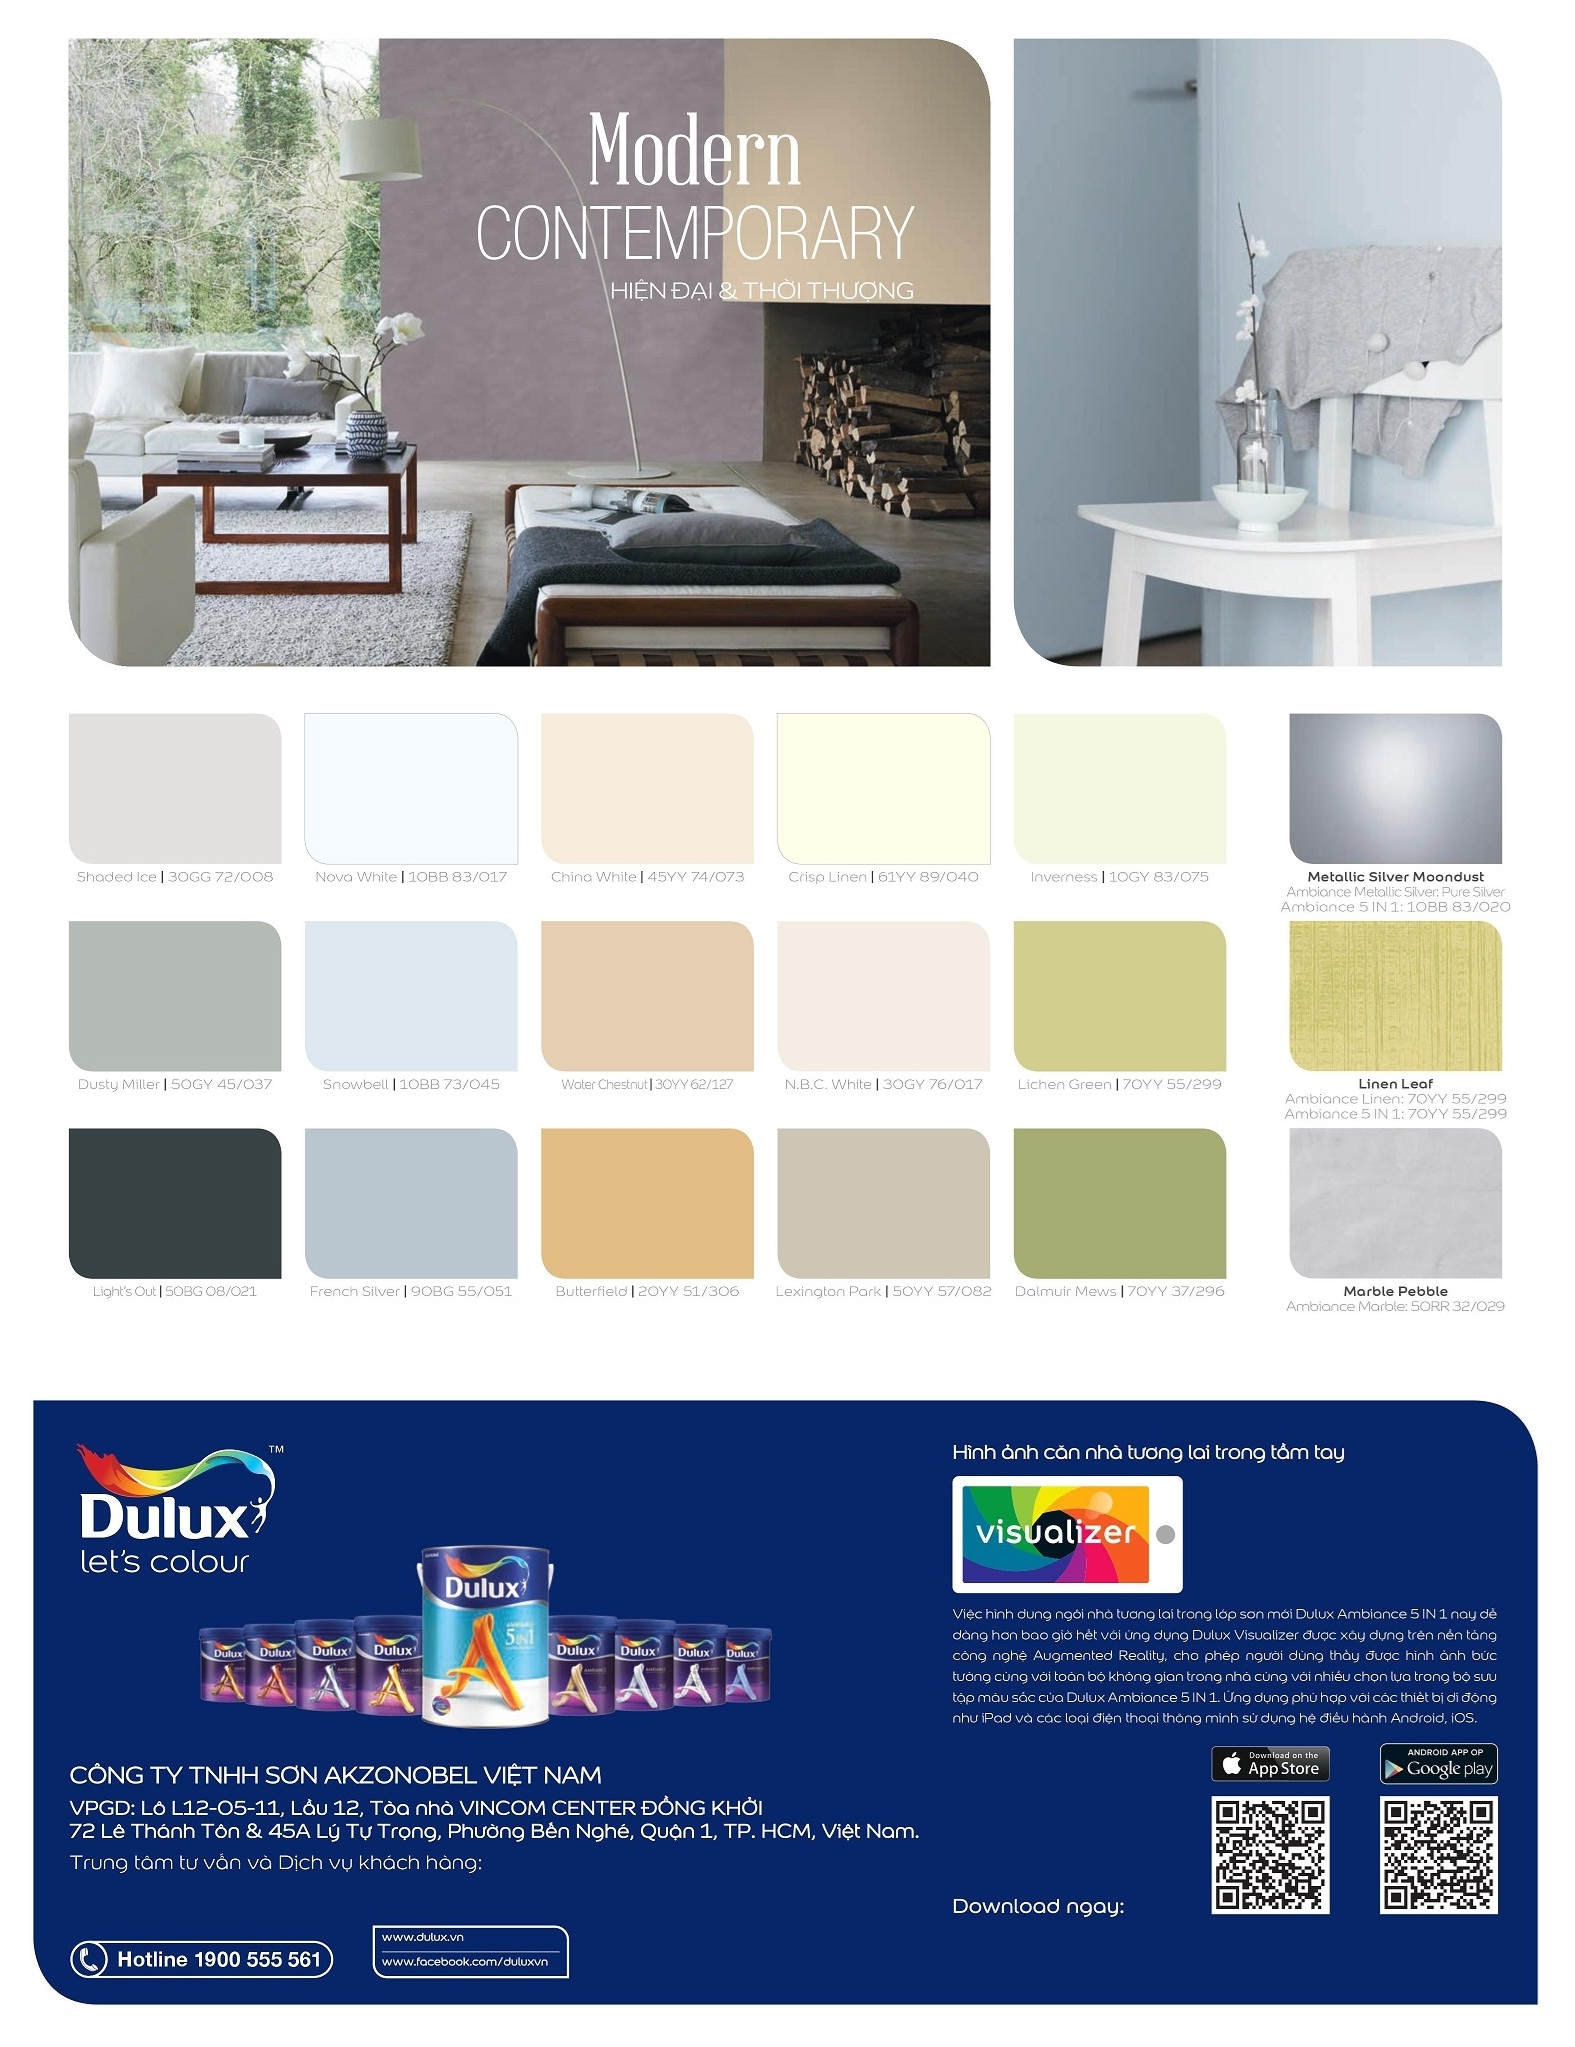 son-mai-anh-bang-mau-son-nuoc-dulux-trong-nha-dulux-ambiance-5in1-2